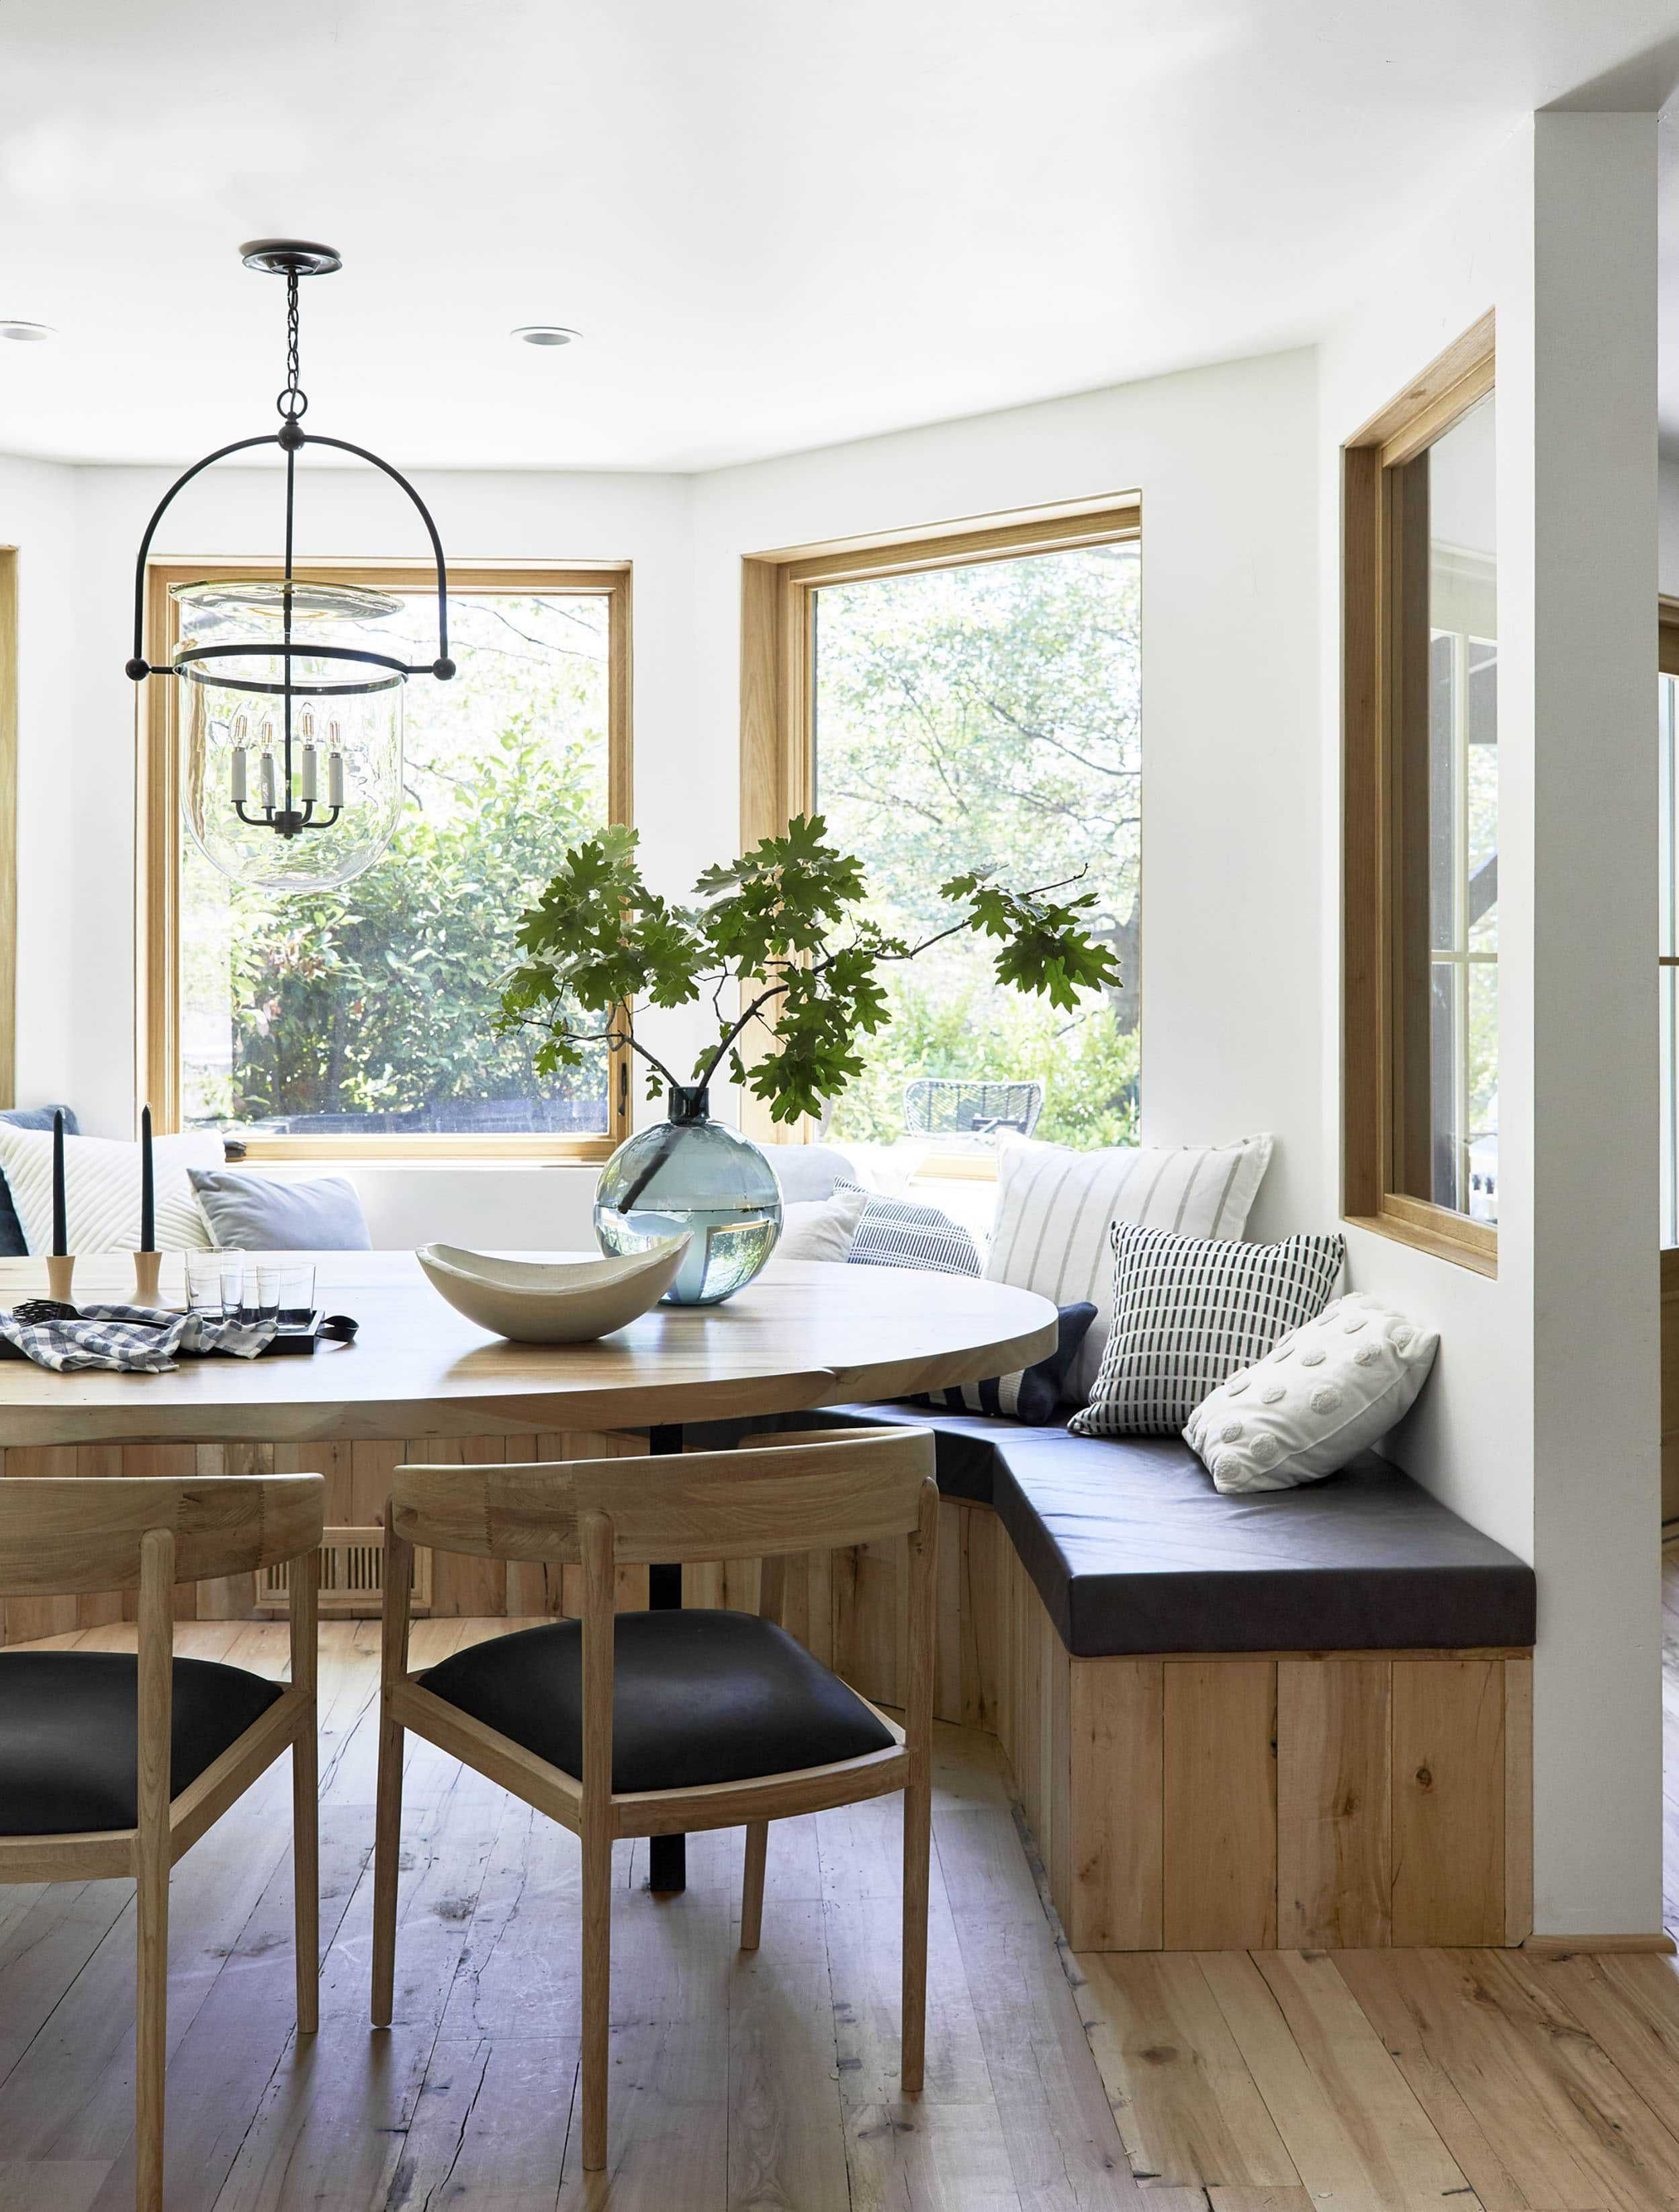 Emily-Henderson-Moutain-House-Dining-Room-LoRes1.jpg